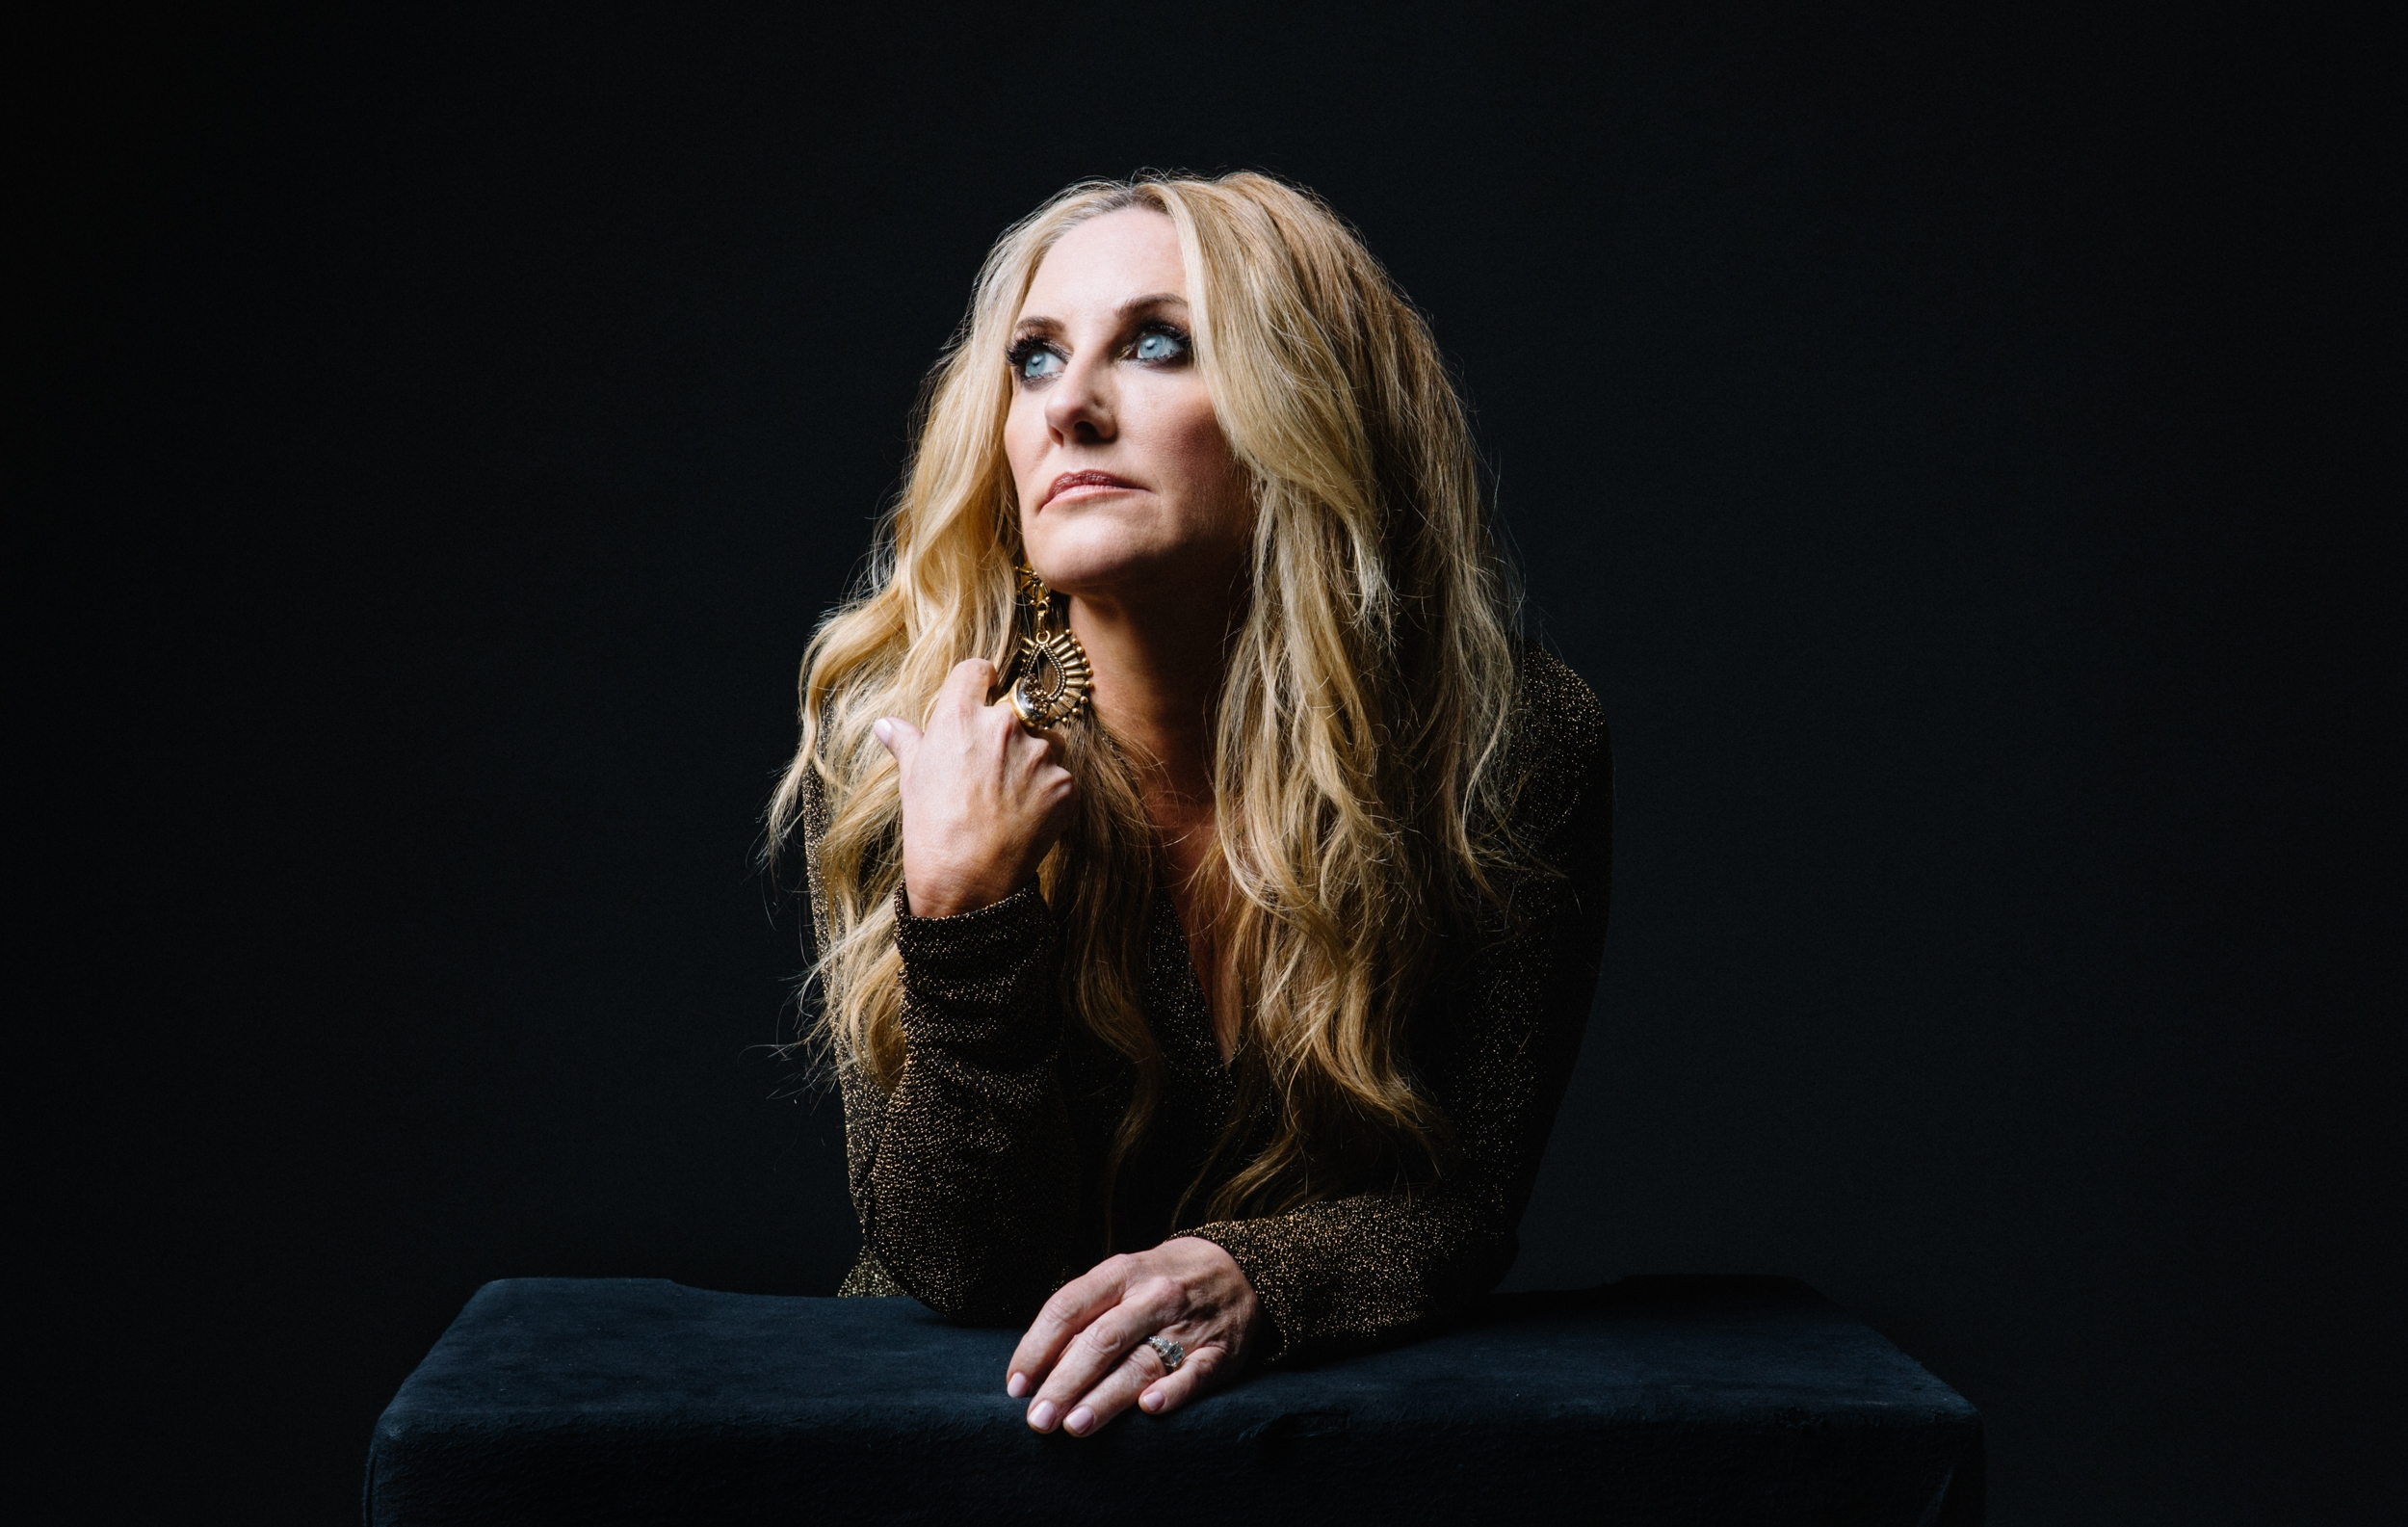 _images_uploads_gallery_20170711_ATORecords_LeeAnnWomack_EbruYildiz_3284.jpg